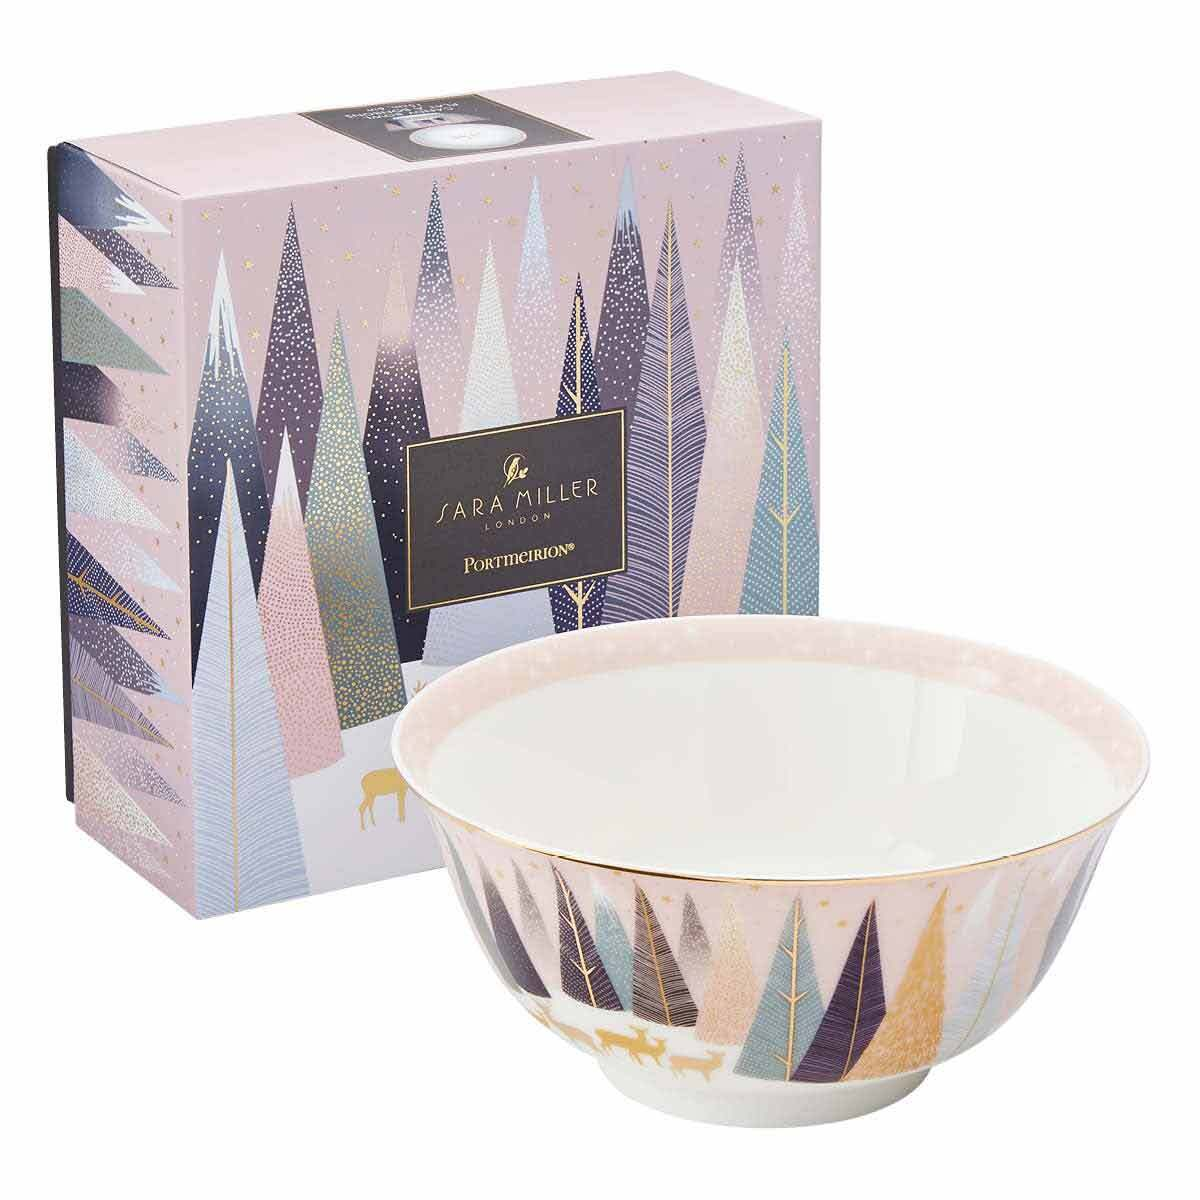 Sara Miller London for Portmeirion Frosted Pines 6 Inch Candy Bowl image number 3